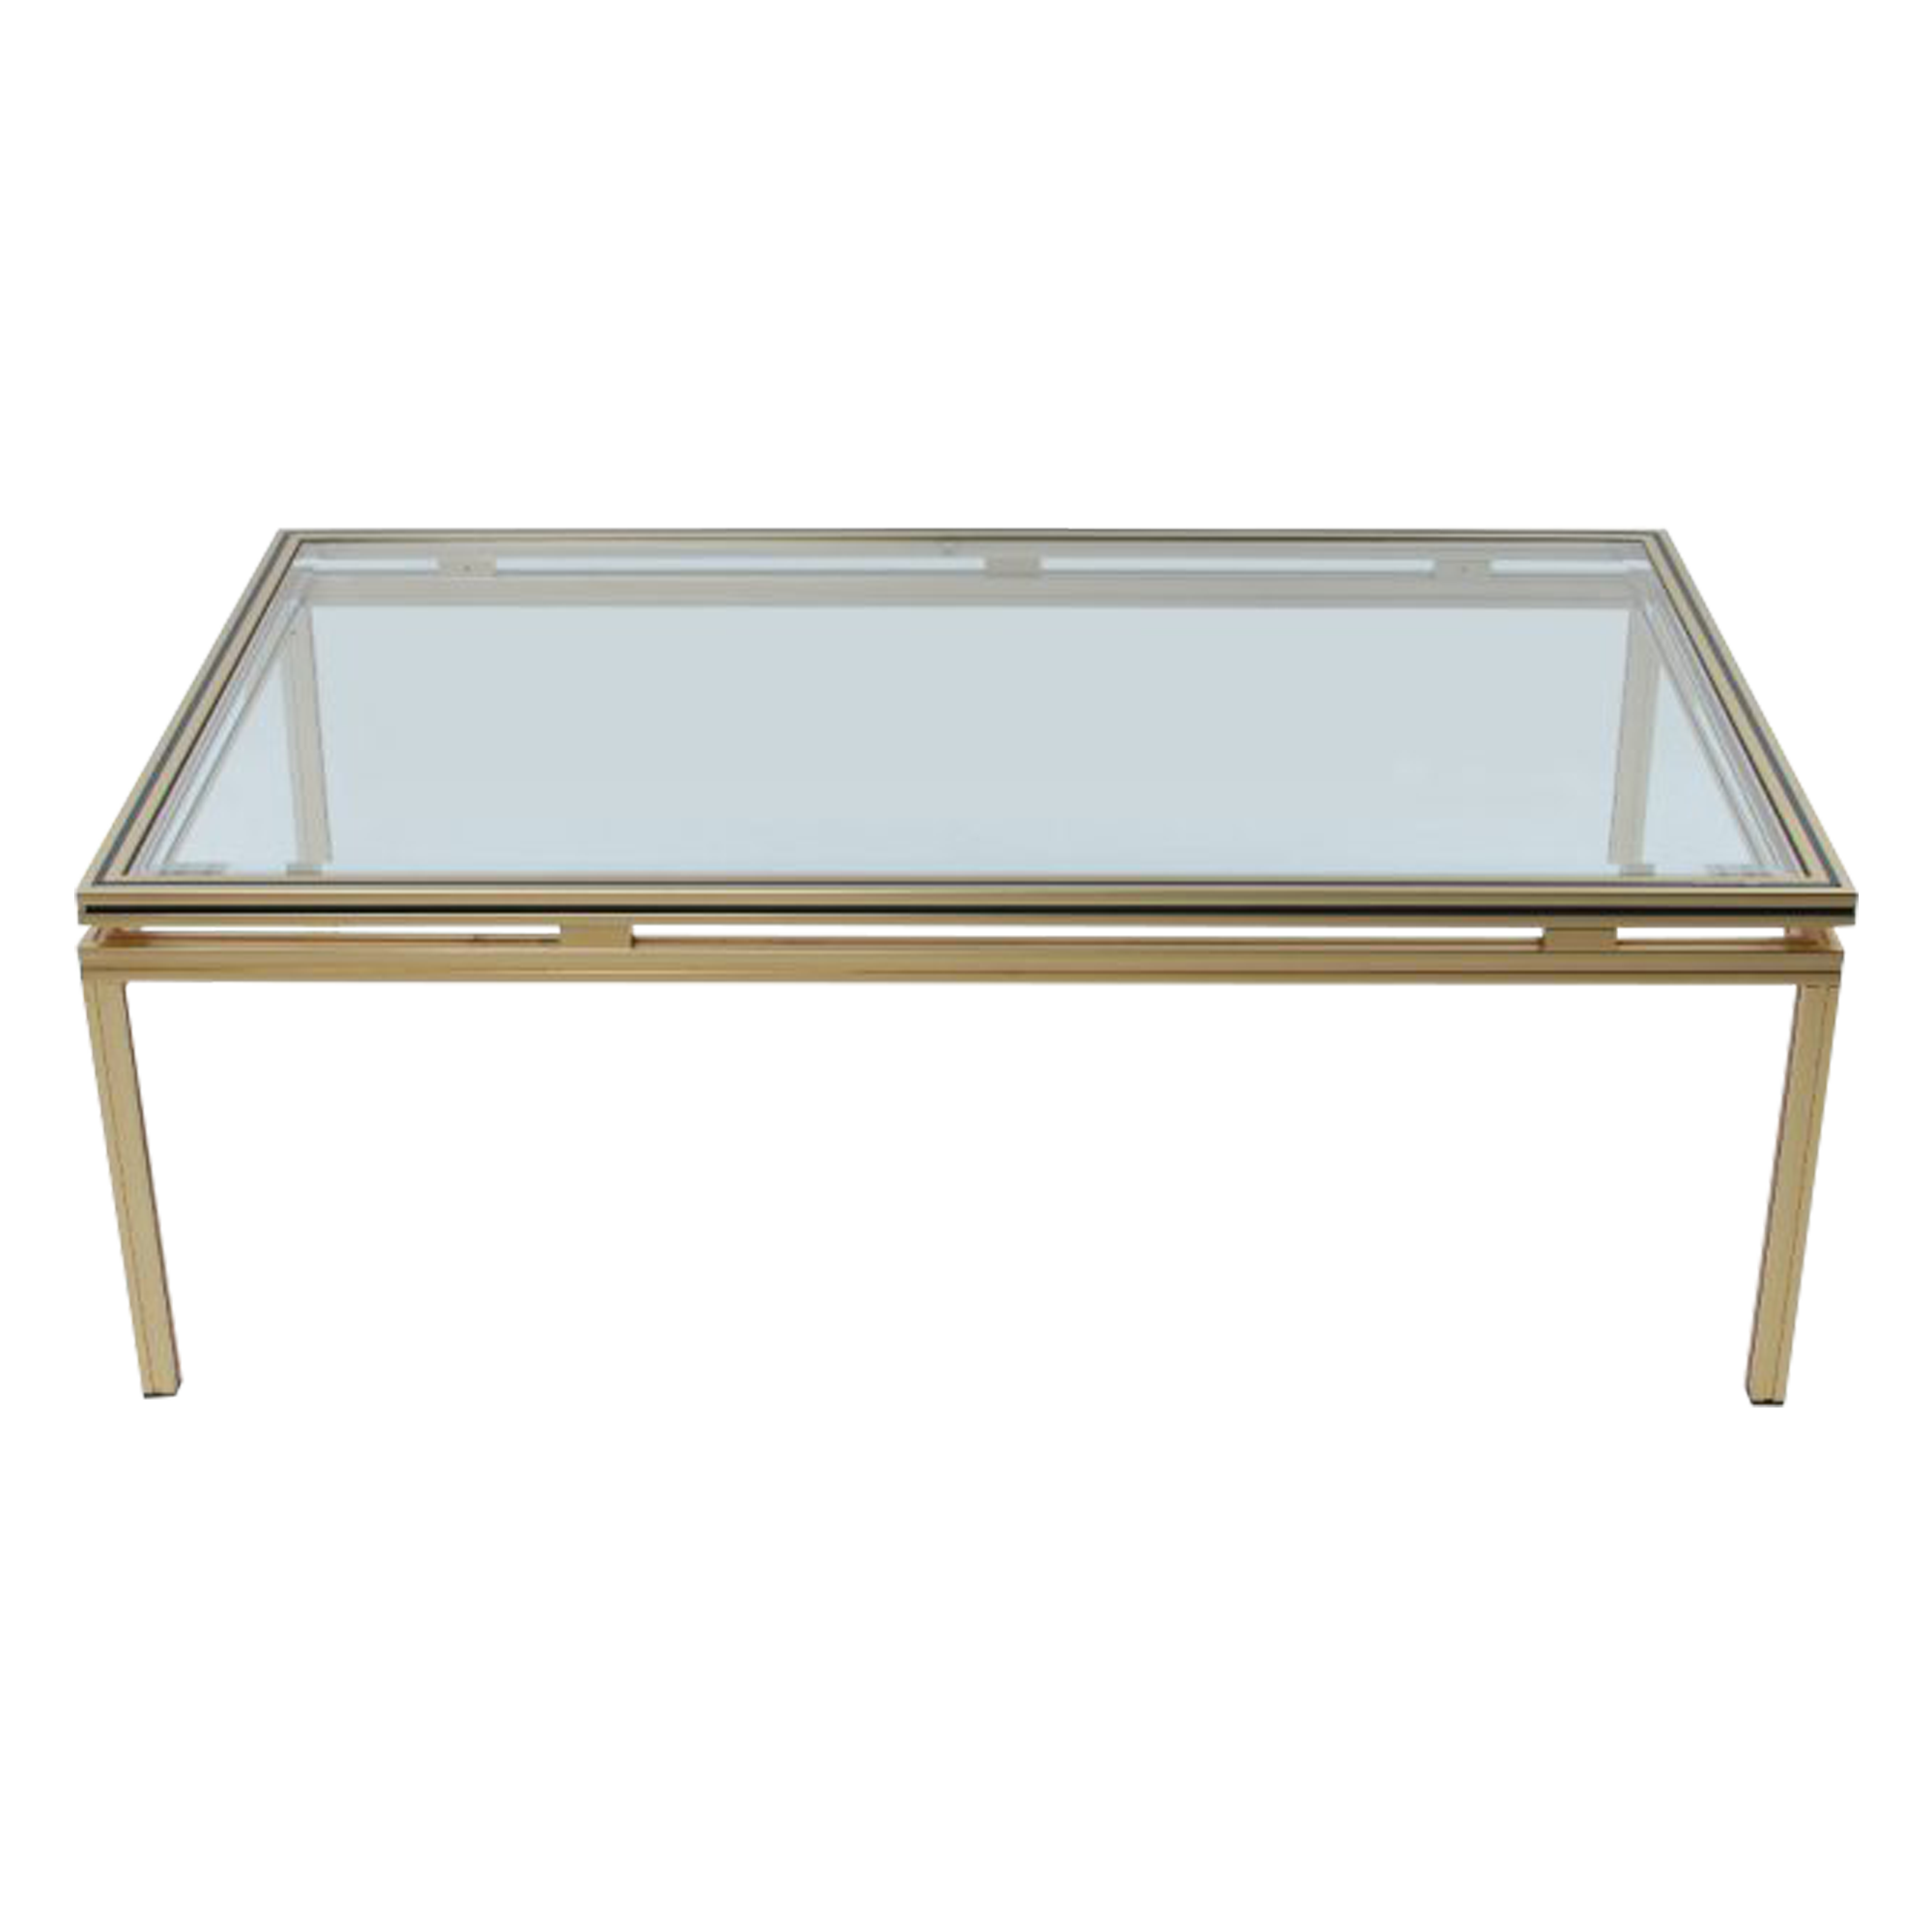 Gold Plated Coffee Table: Pierre Vandel Gold Plated Glass Coffee Table